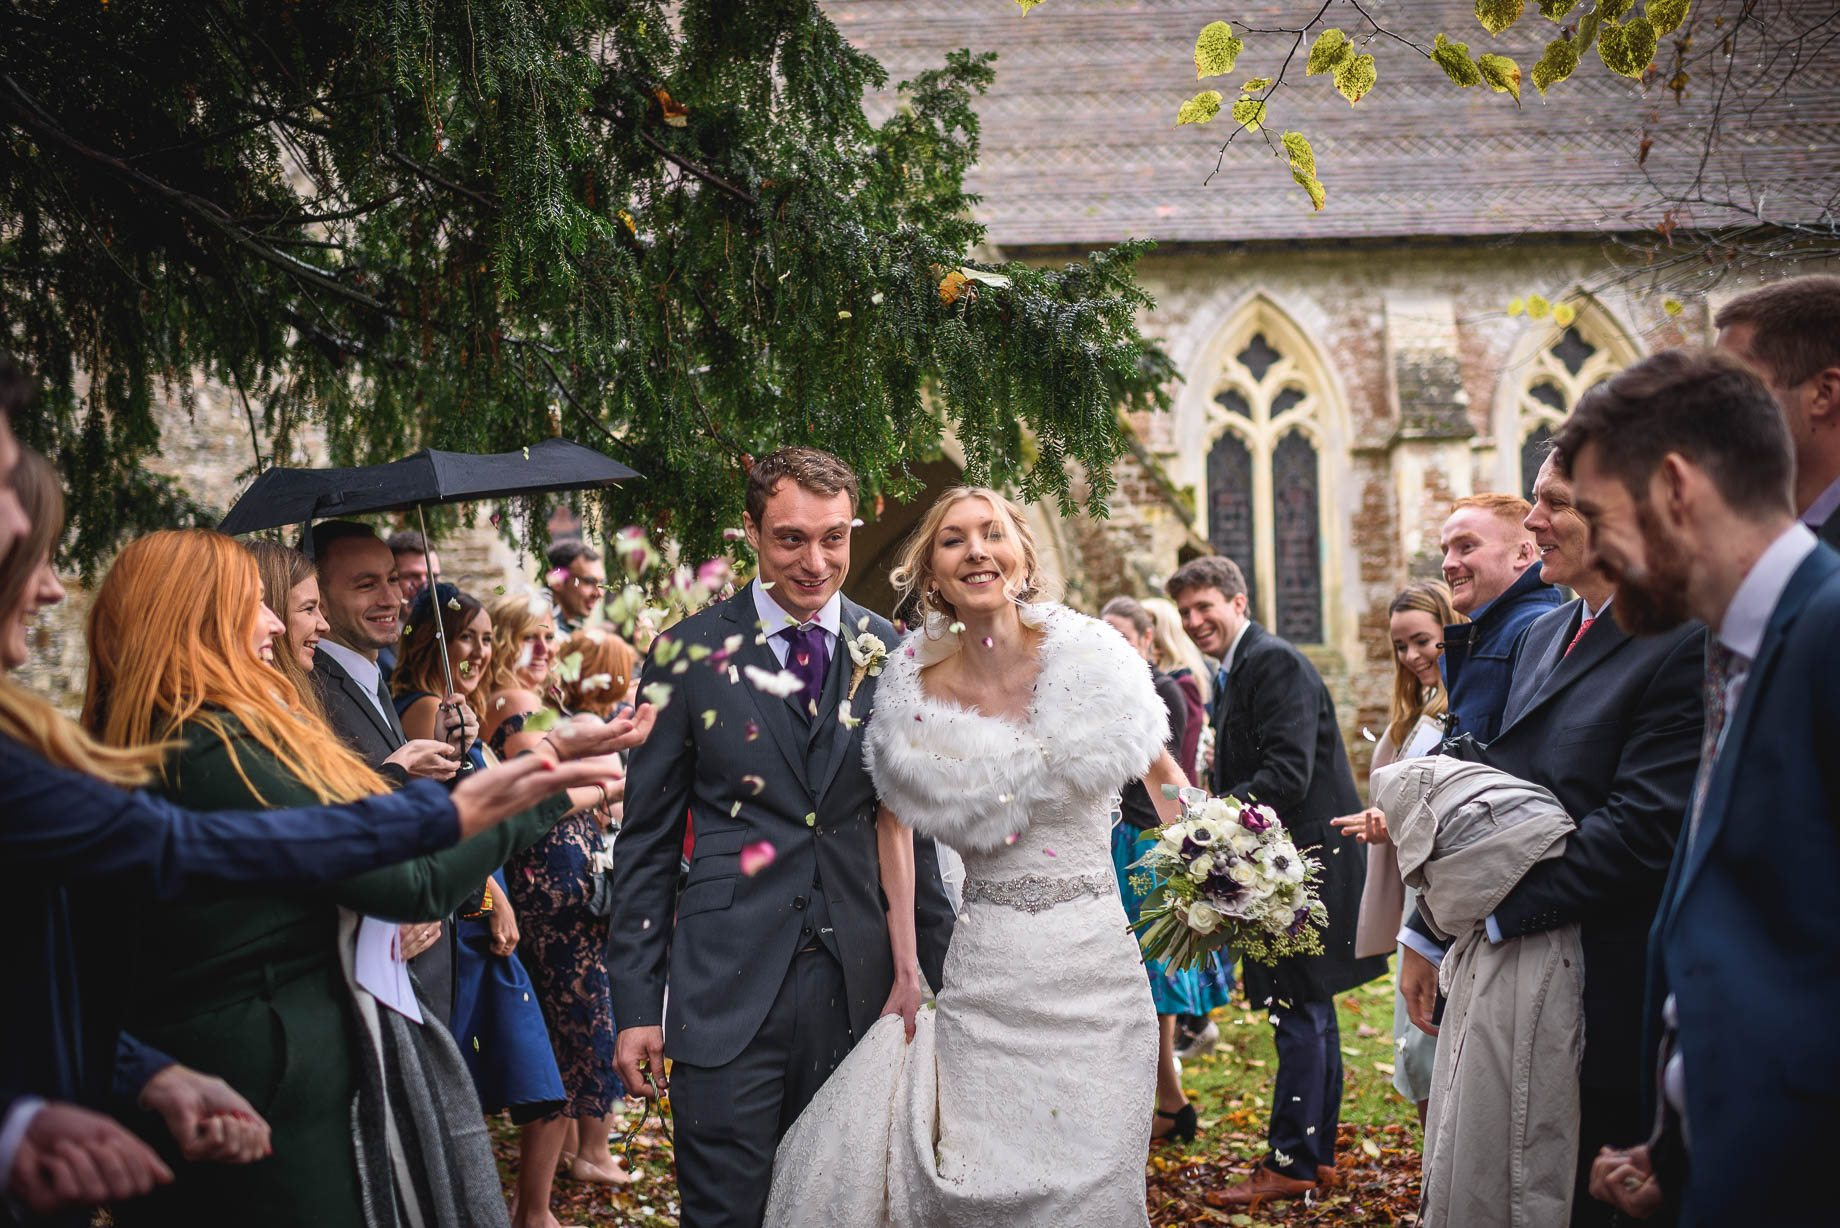 Tithe Barn wedding photography - Victoria + Lewis